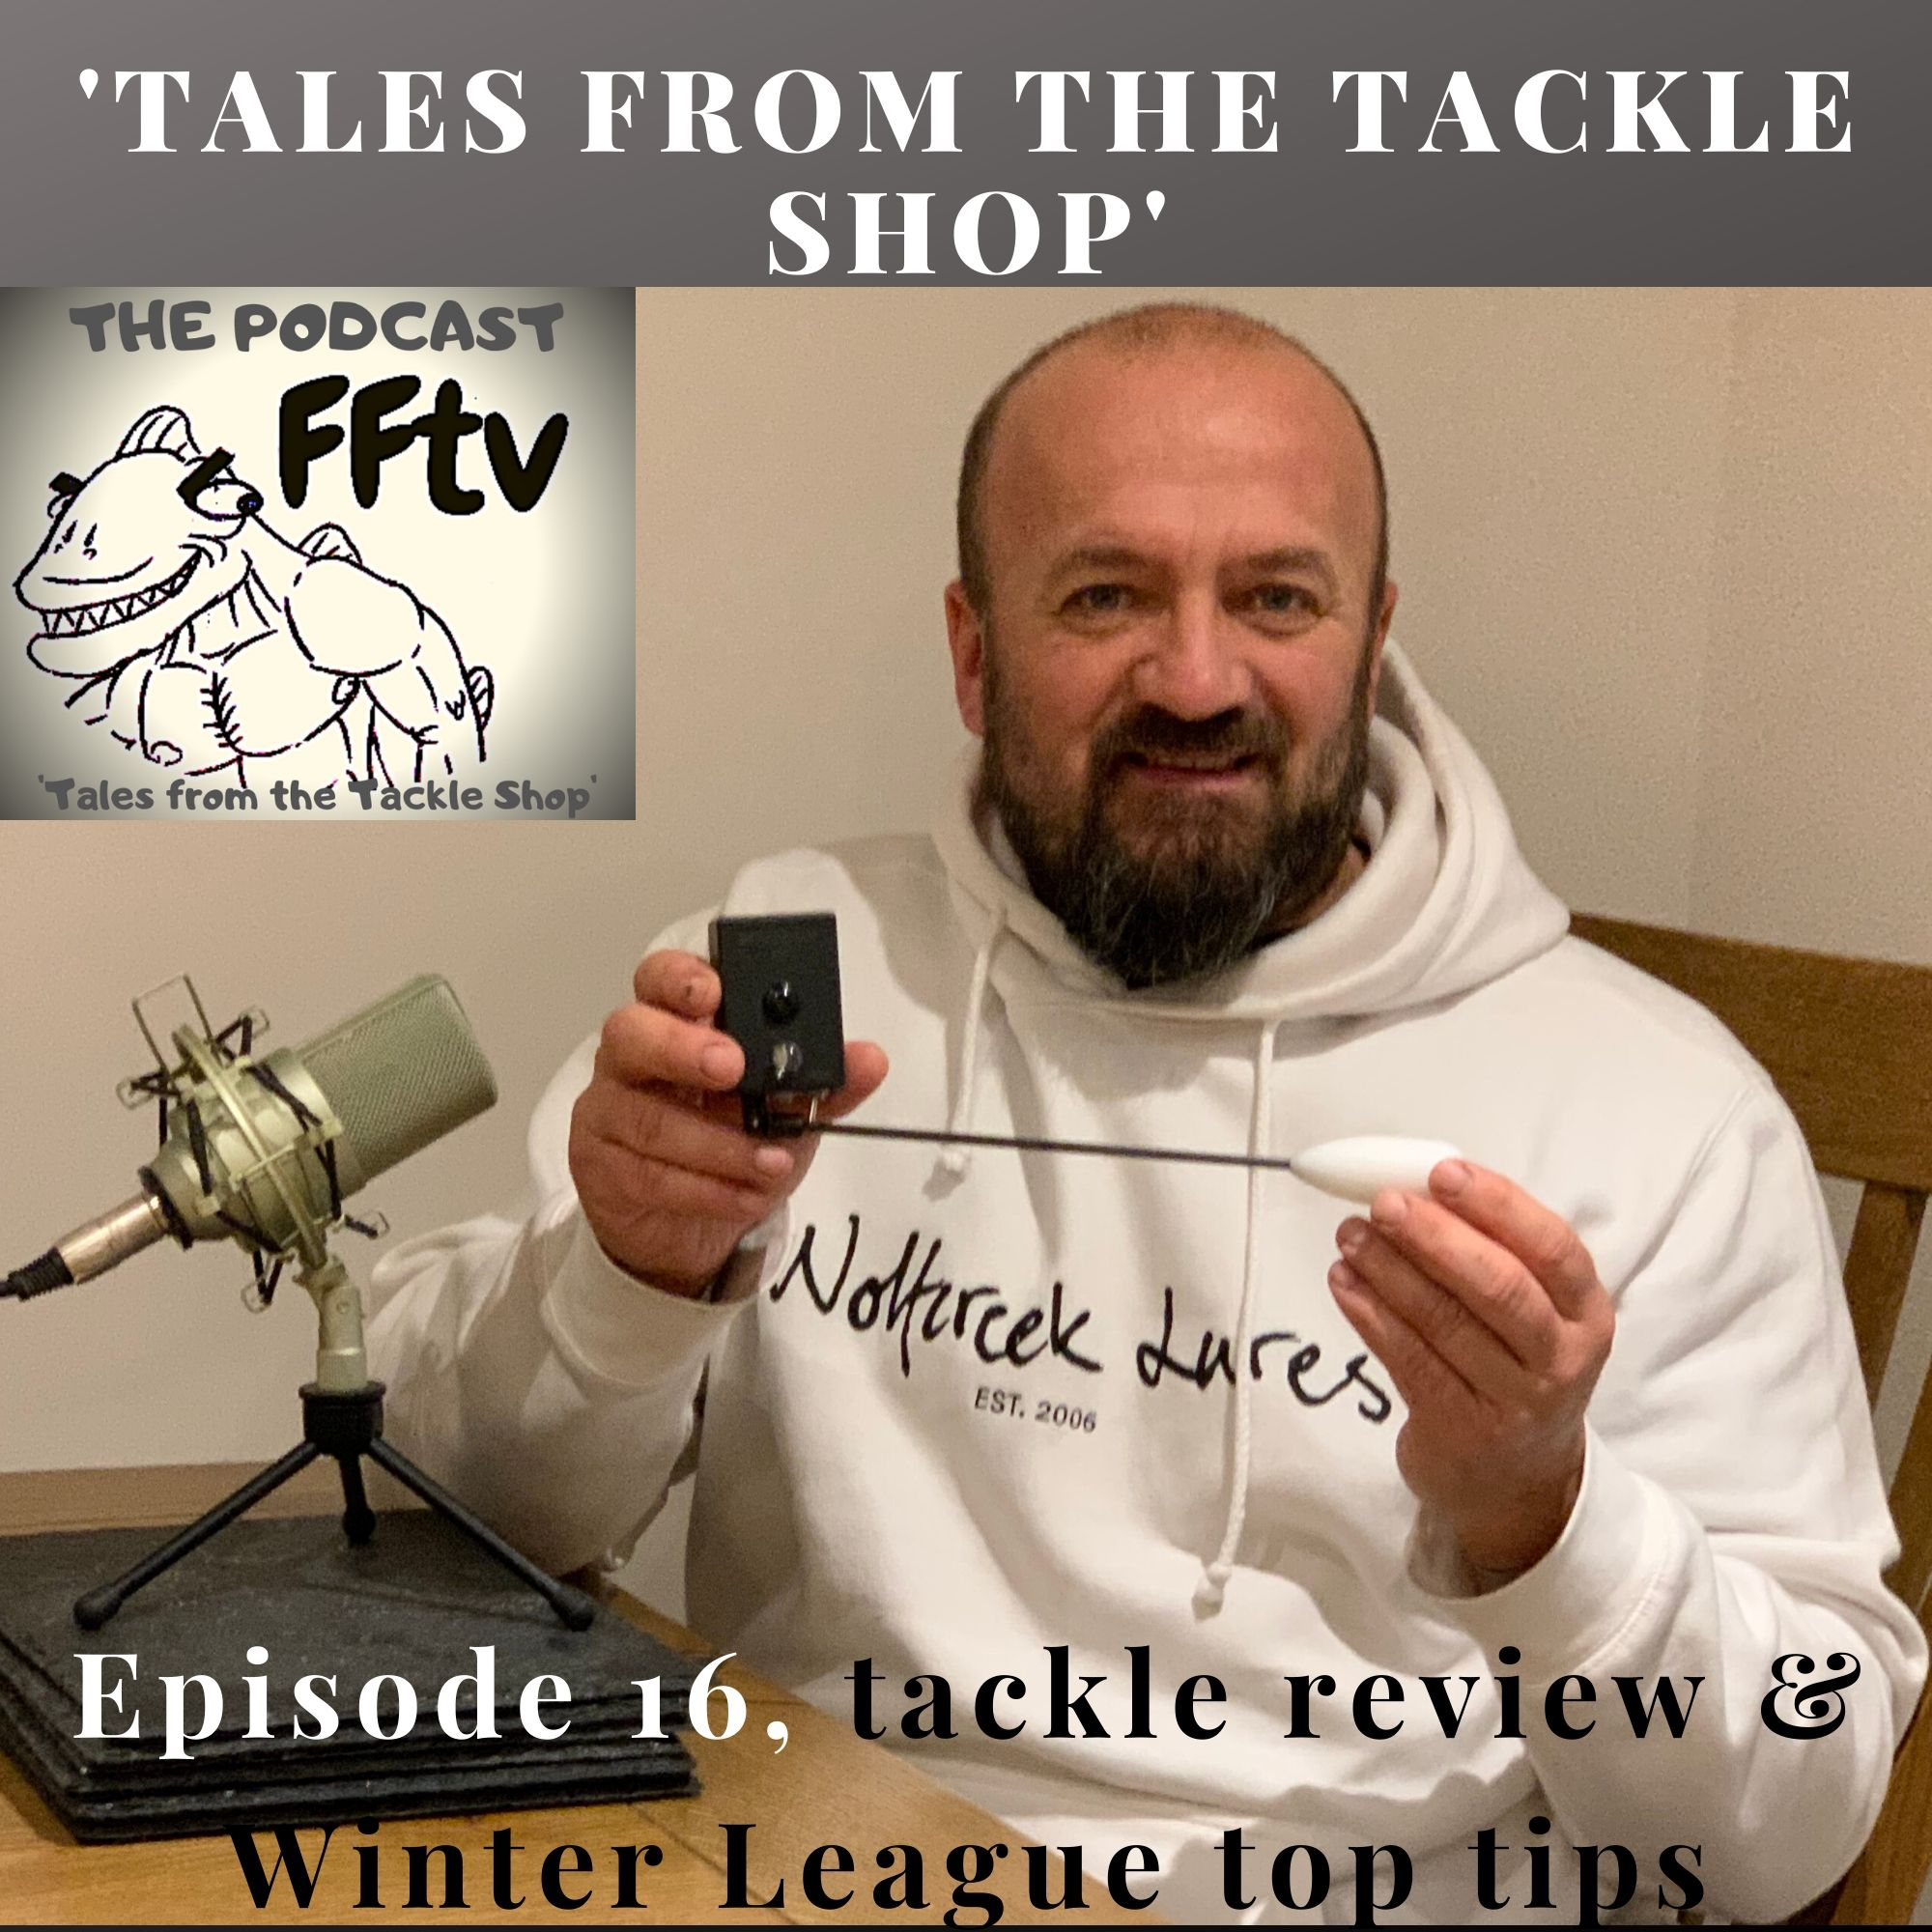 Episode 16, tackle review and Winter League tips